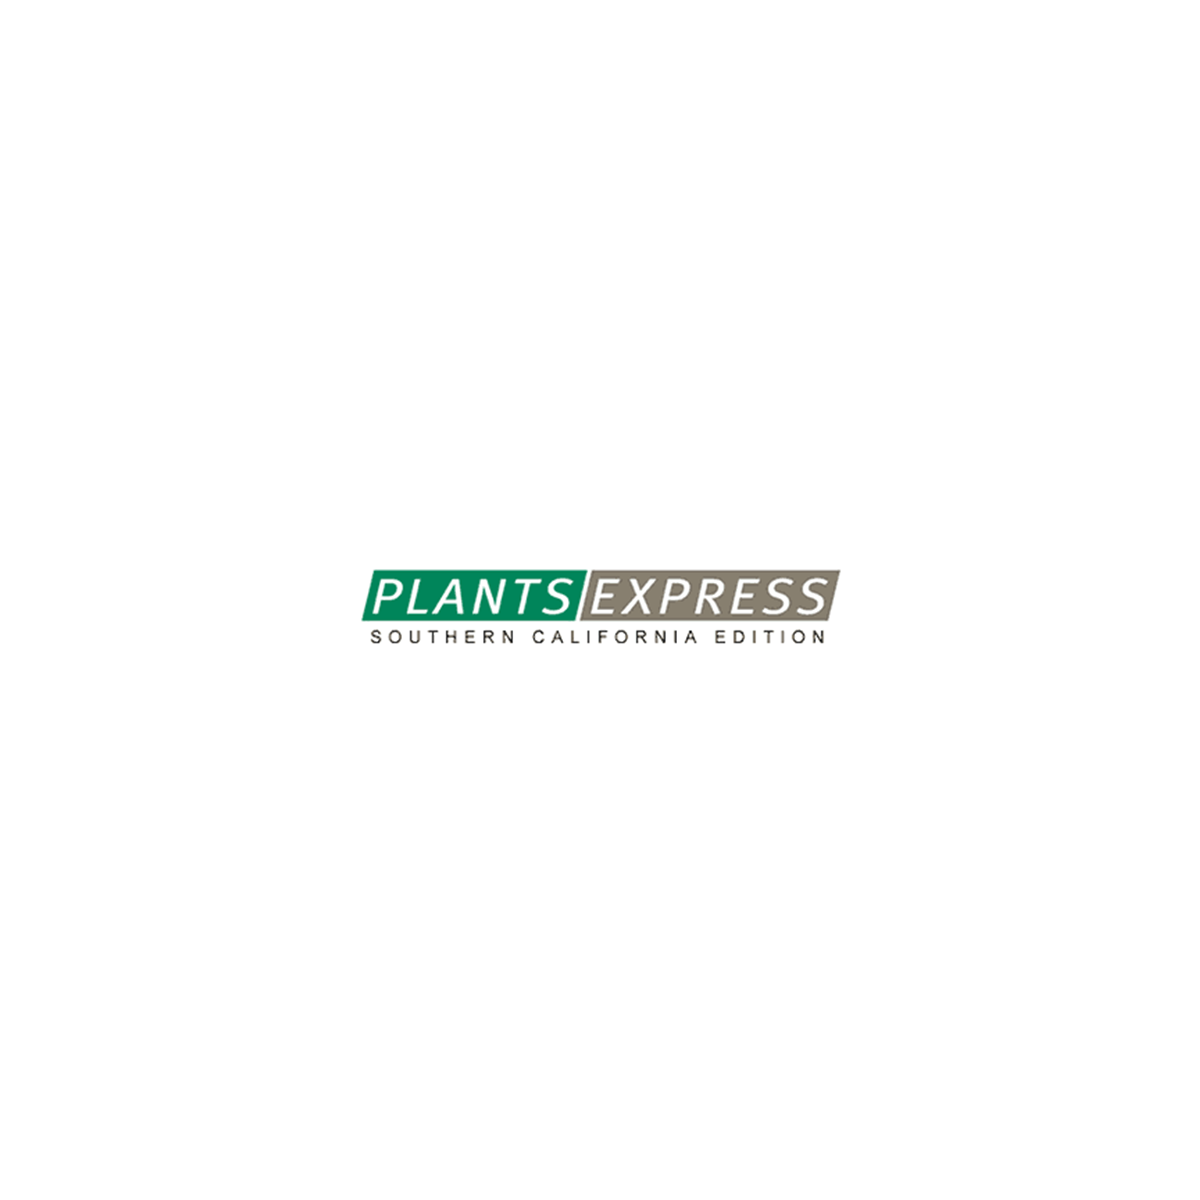 PlantsExpress